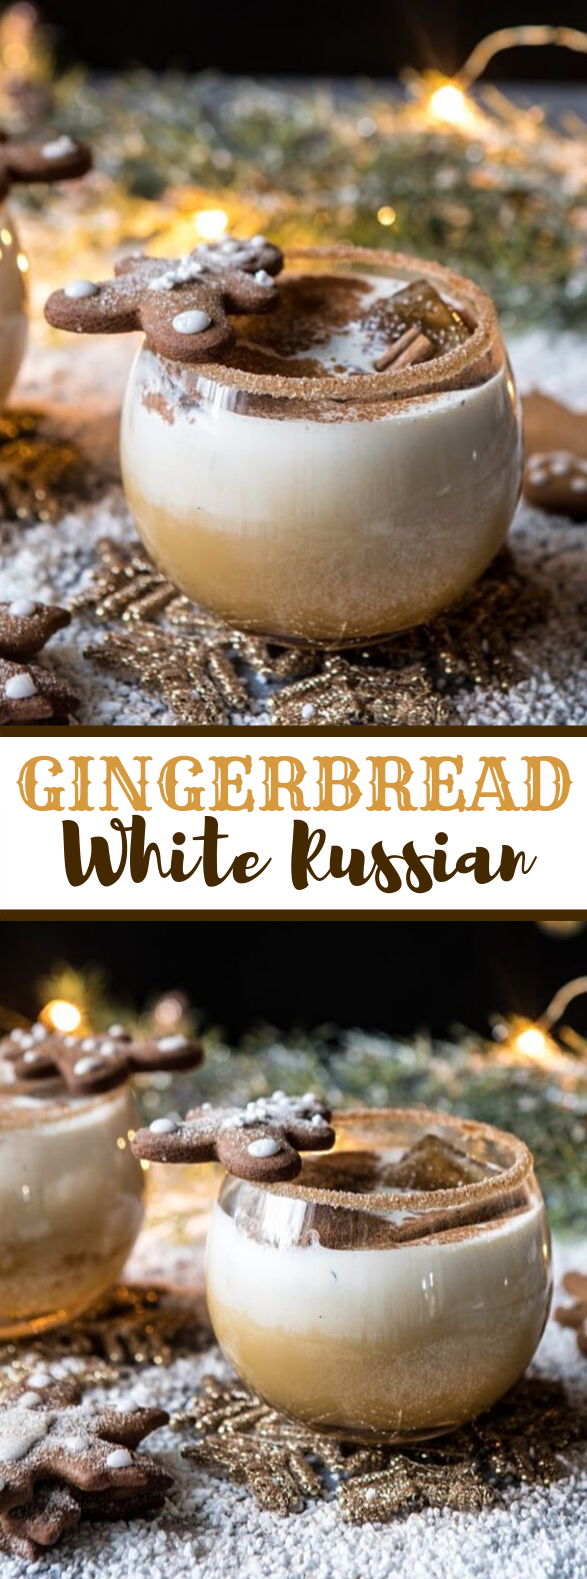 Gingerbread White Russian #drinks #christmas